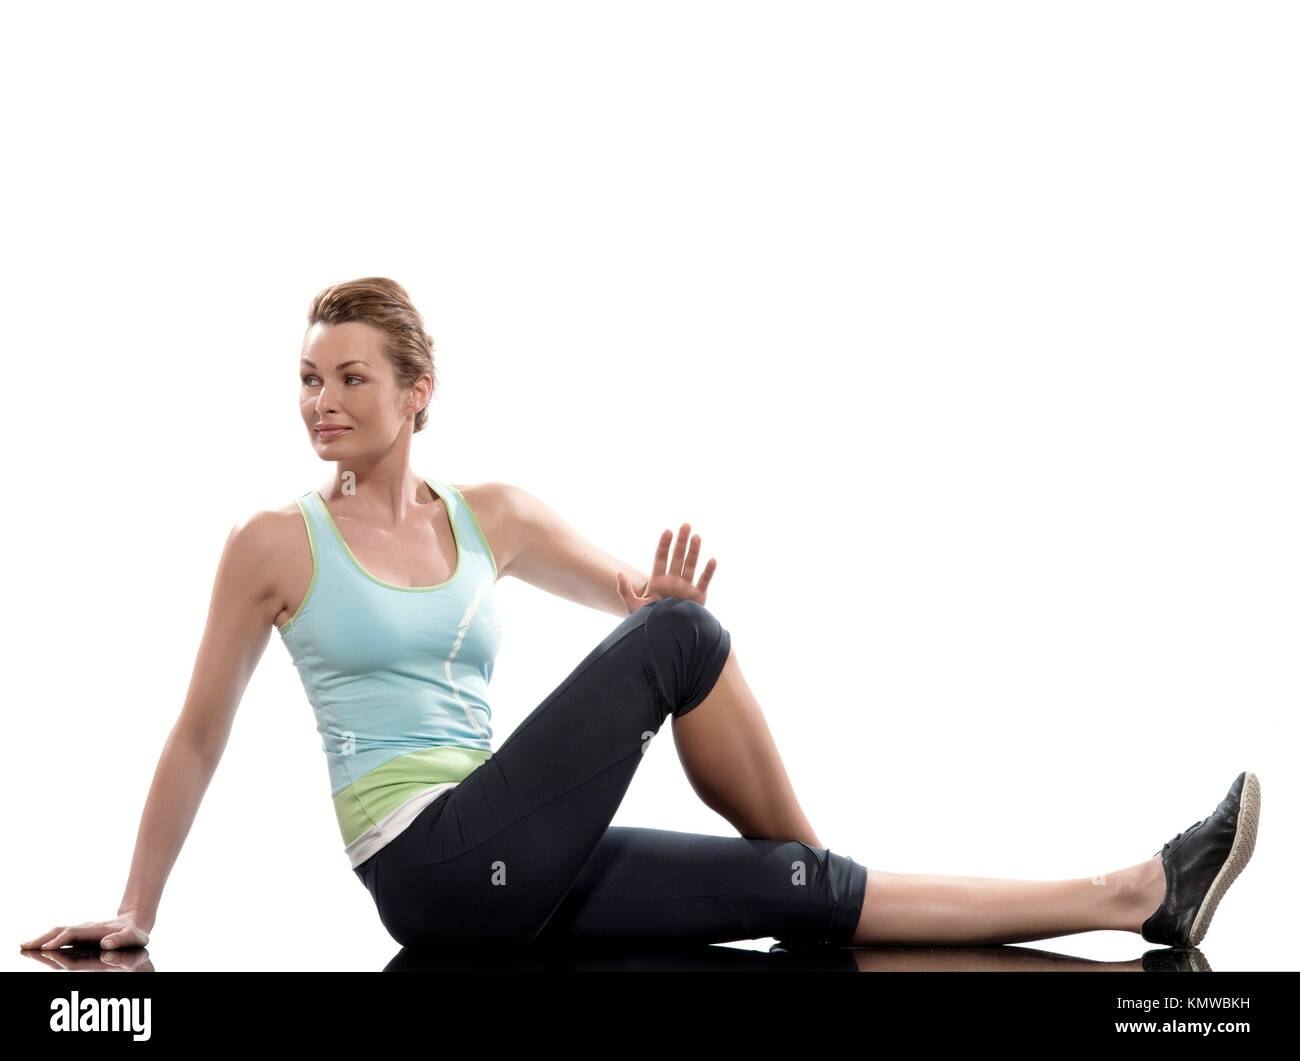 woman on Abdominals rotation workout posture on white background  Sit up, straighten one leg and bend the other - Stock Image